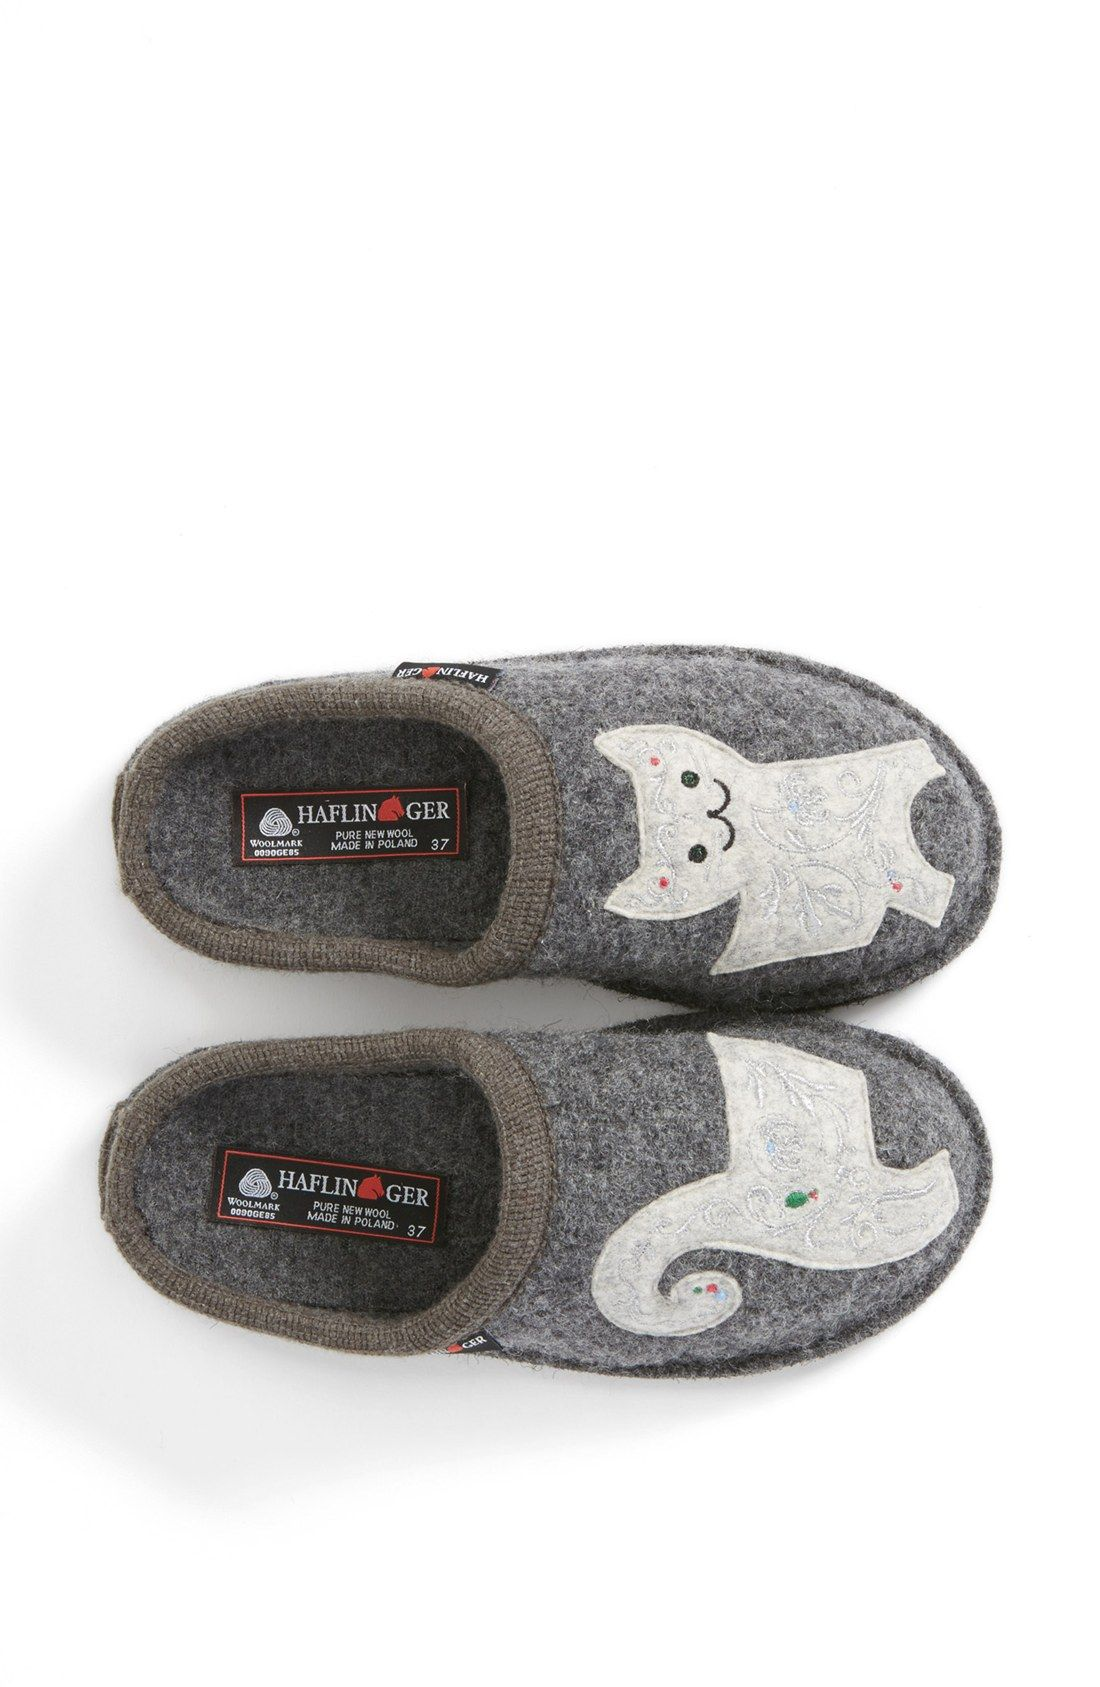 d46a6658c68d Winding down the weekend in this super cute cat slipper.